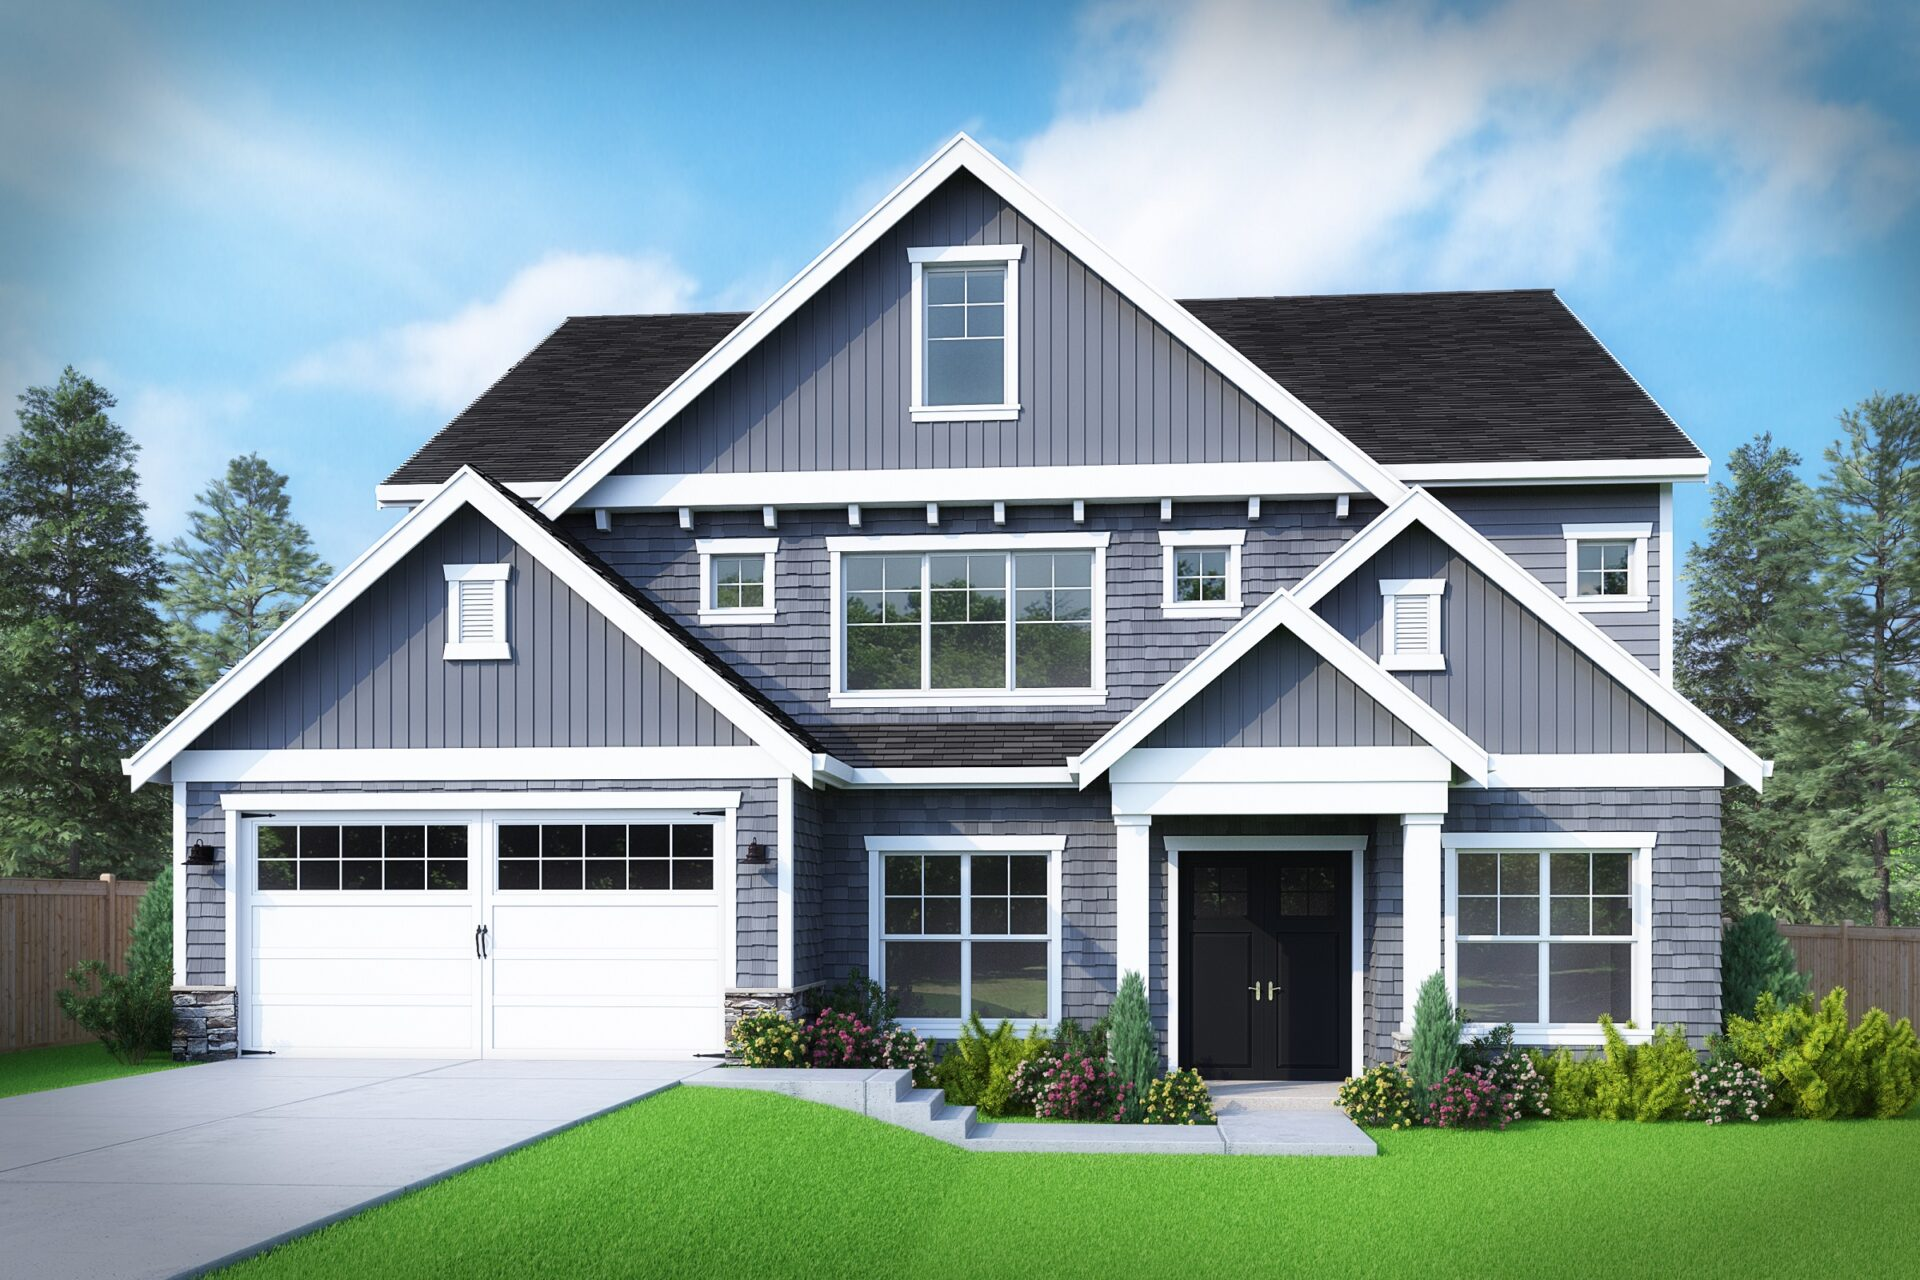 View our new luxury home construction on 12601SE4th Pl, in Bellevue, WA from MN Custom Homes